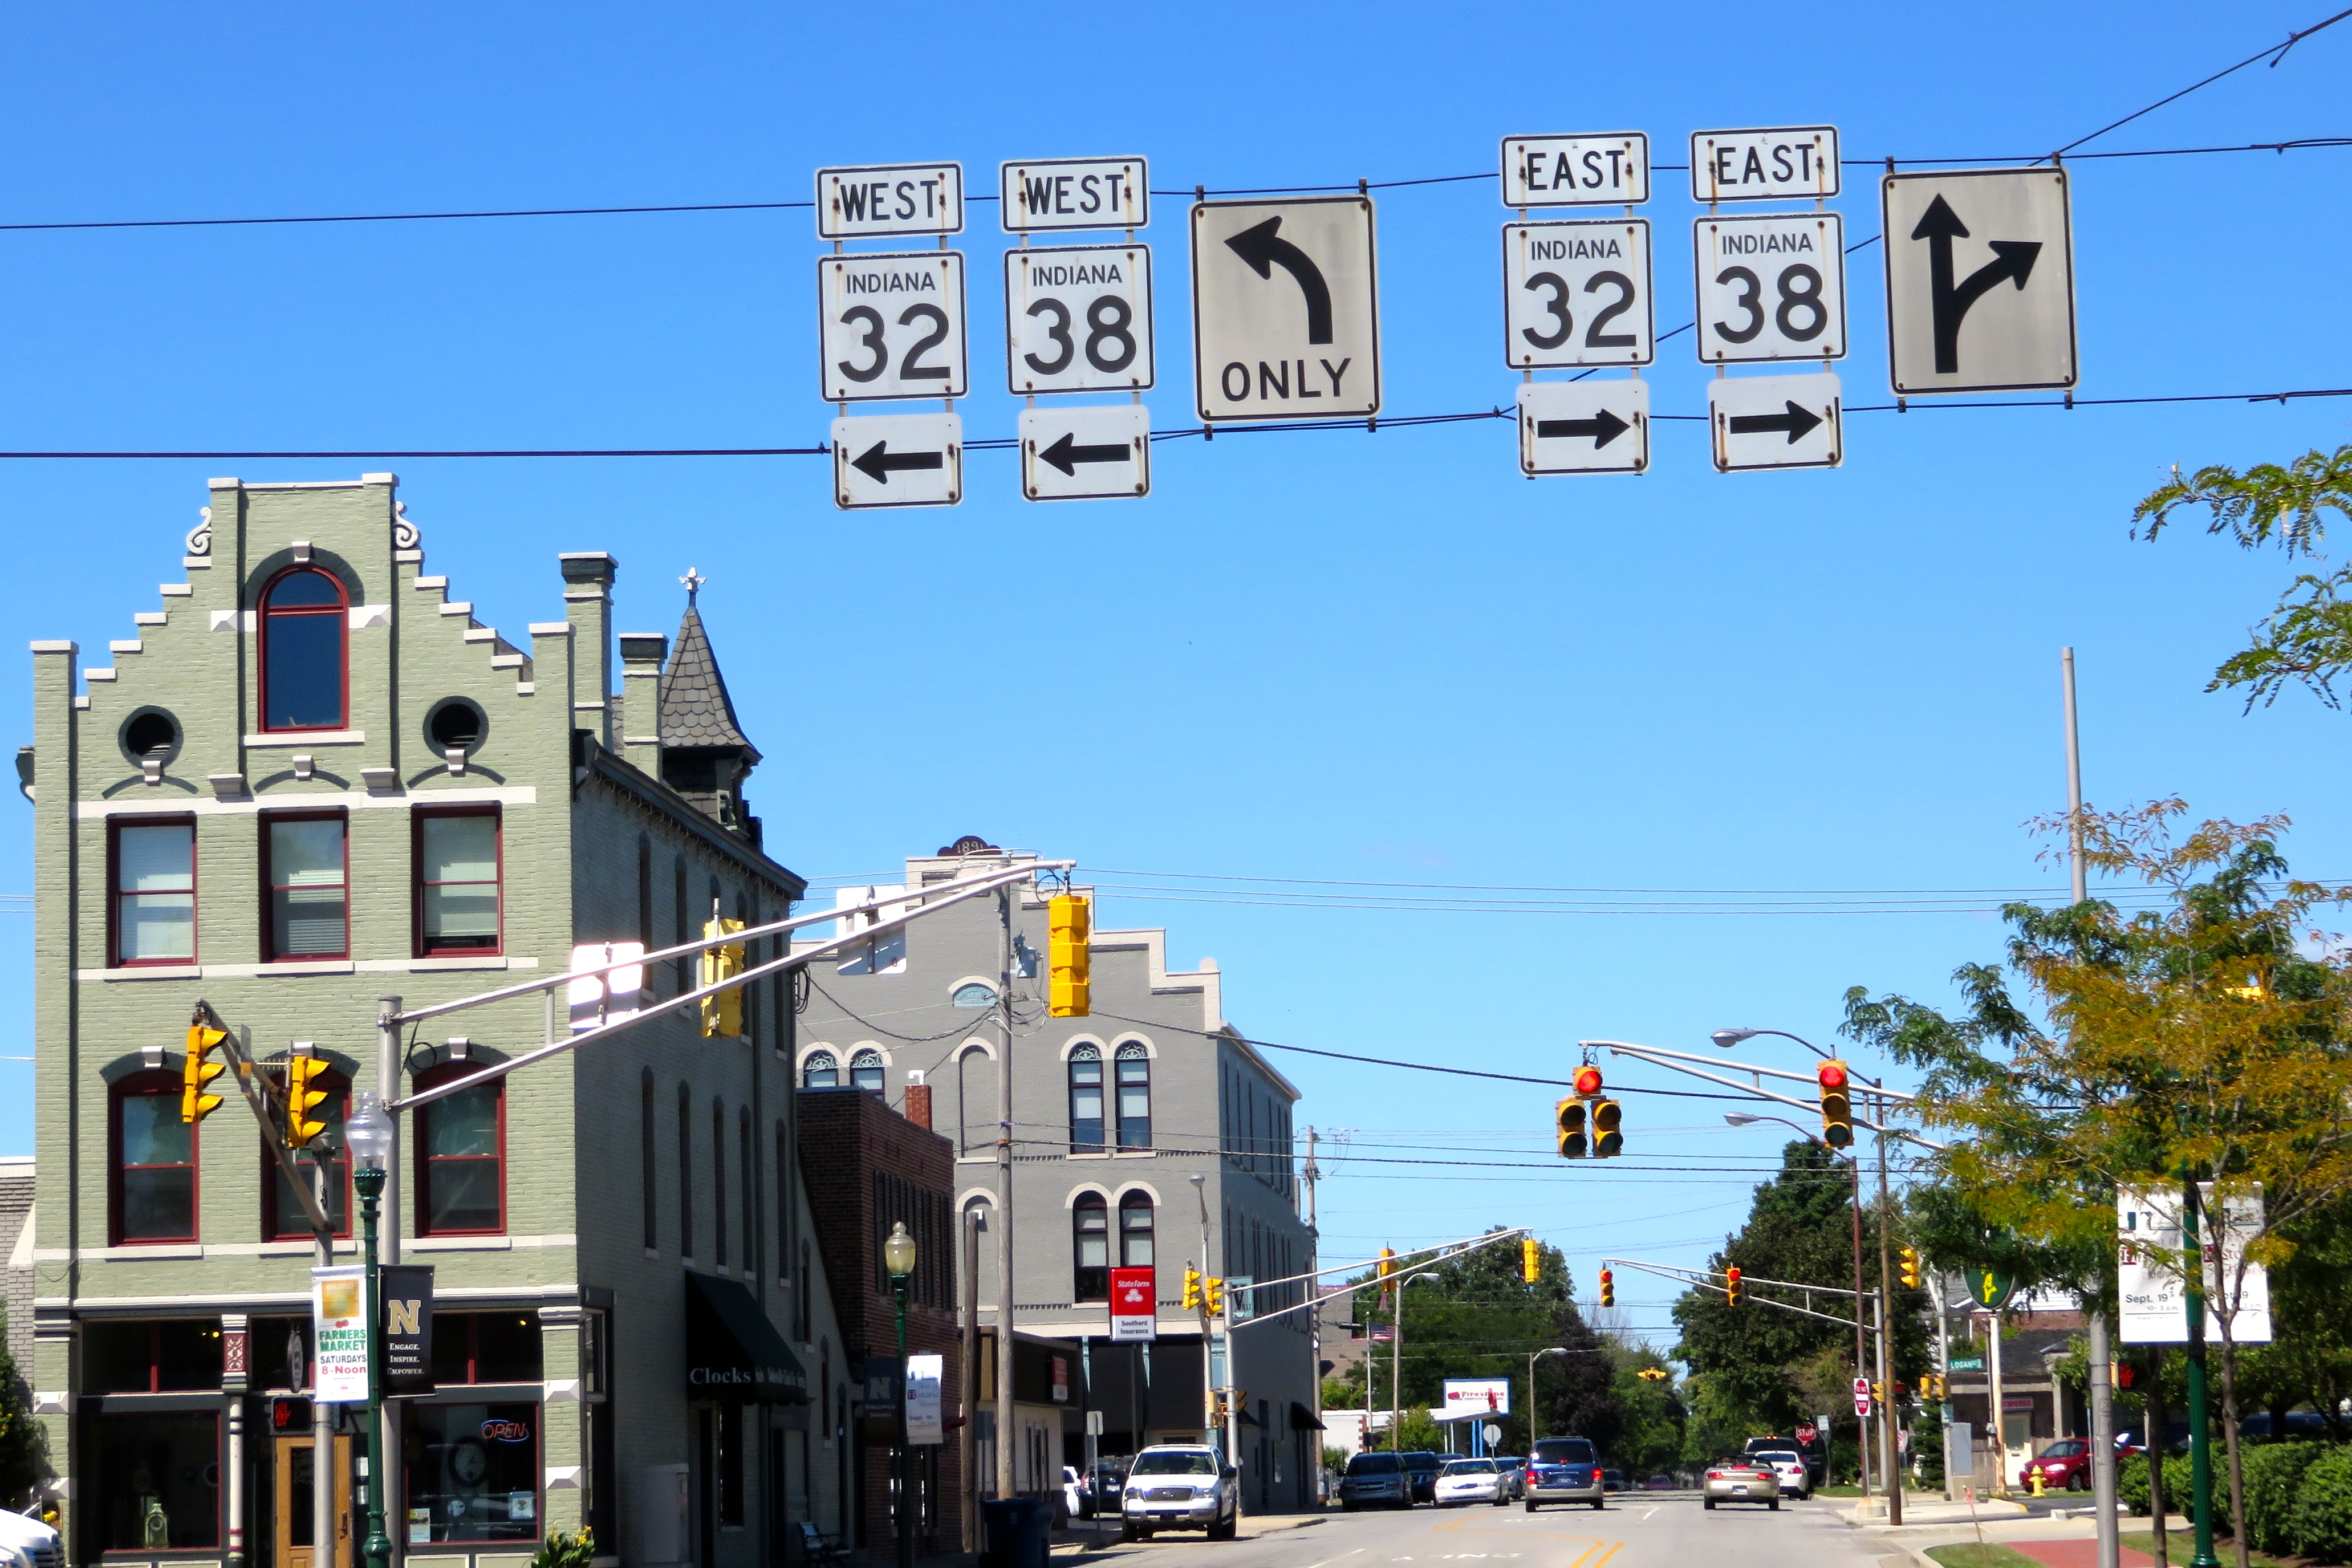 Downtown Noblesville Indiana 32/38 signs